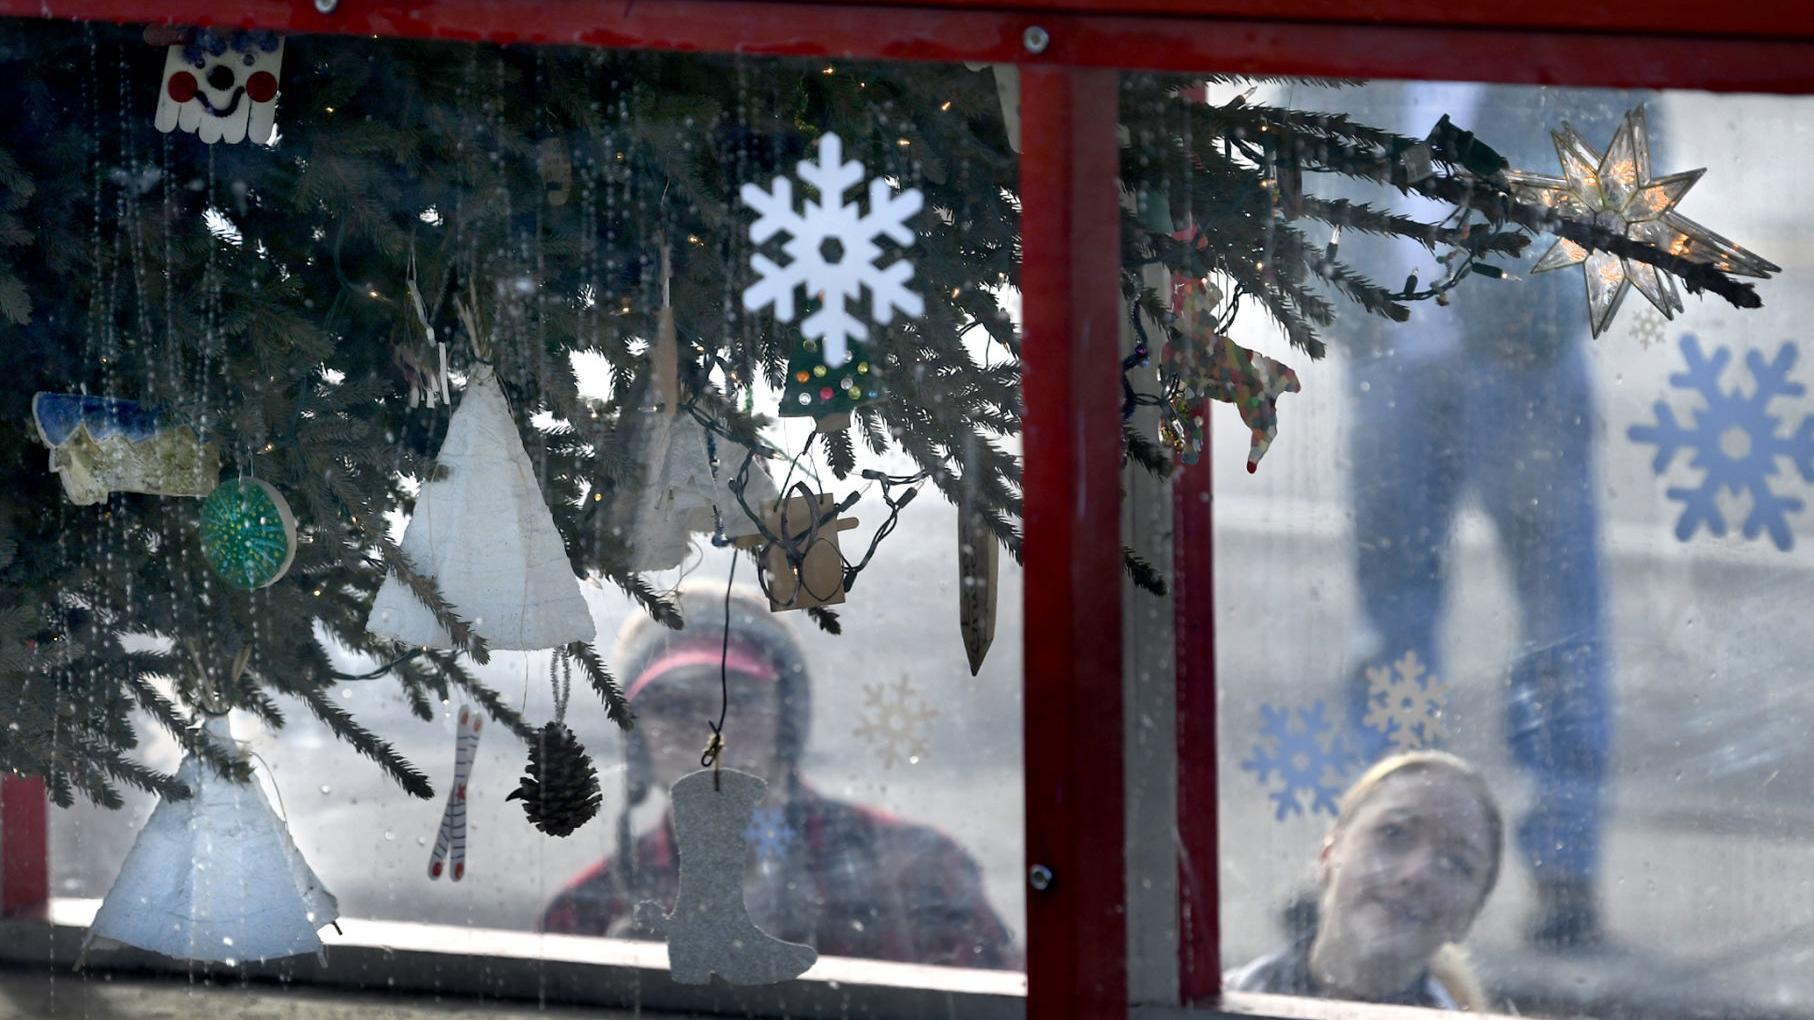 From Plains with cheer: Capitol Christmas Tree makes stop in driver's hometown